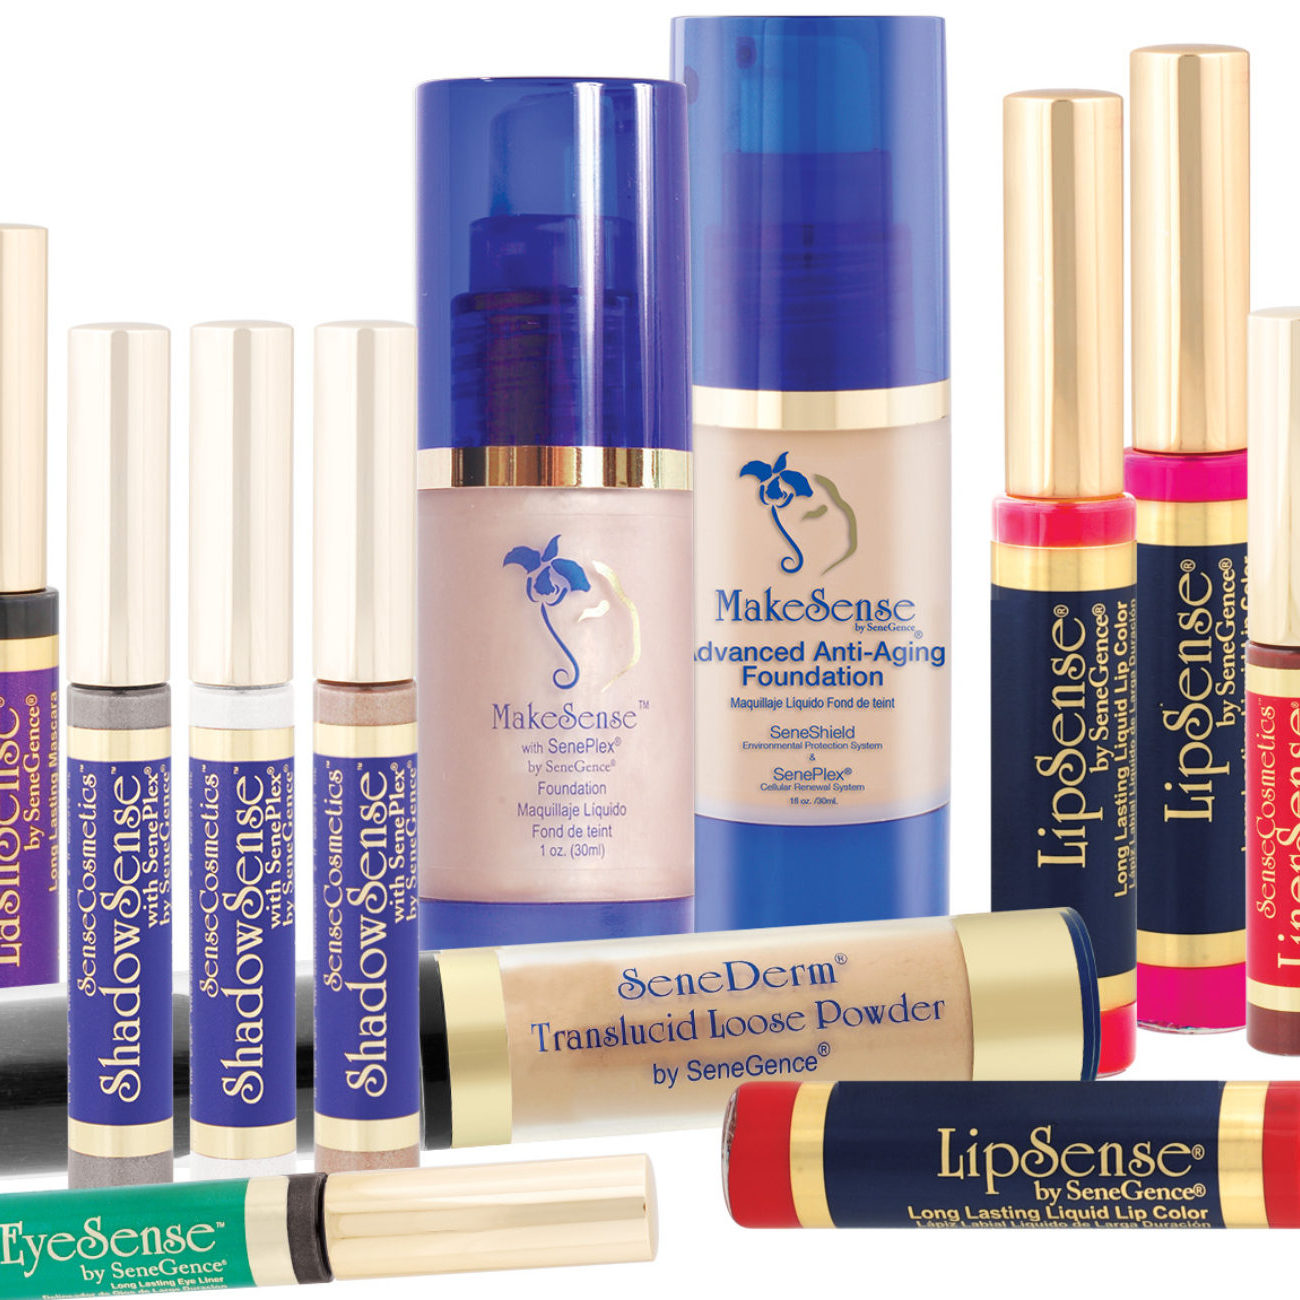 cropped-Image-Product-Line.jpg